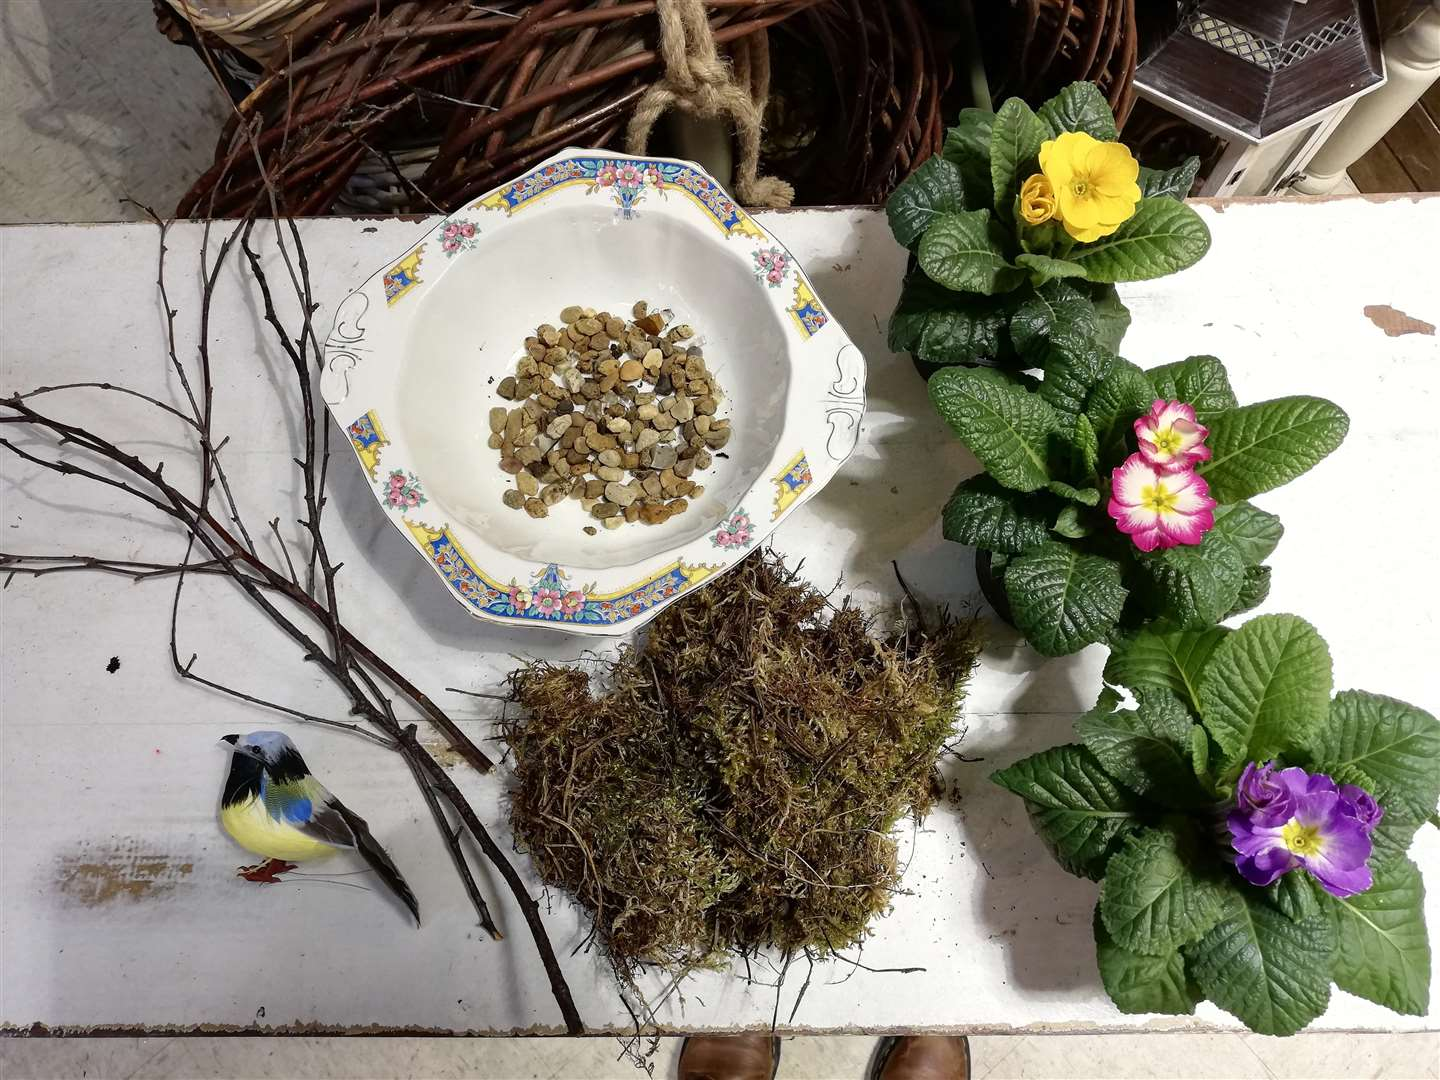 You'll need an old ceramic dish, some gravel, compost, moss and twigs to start. (6387068)